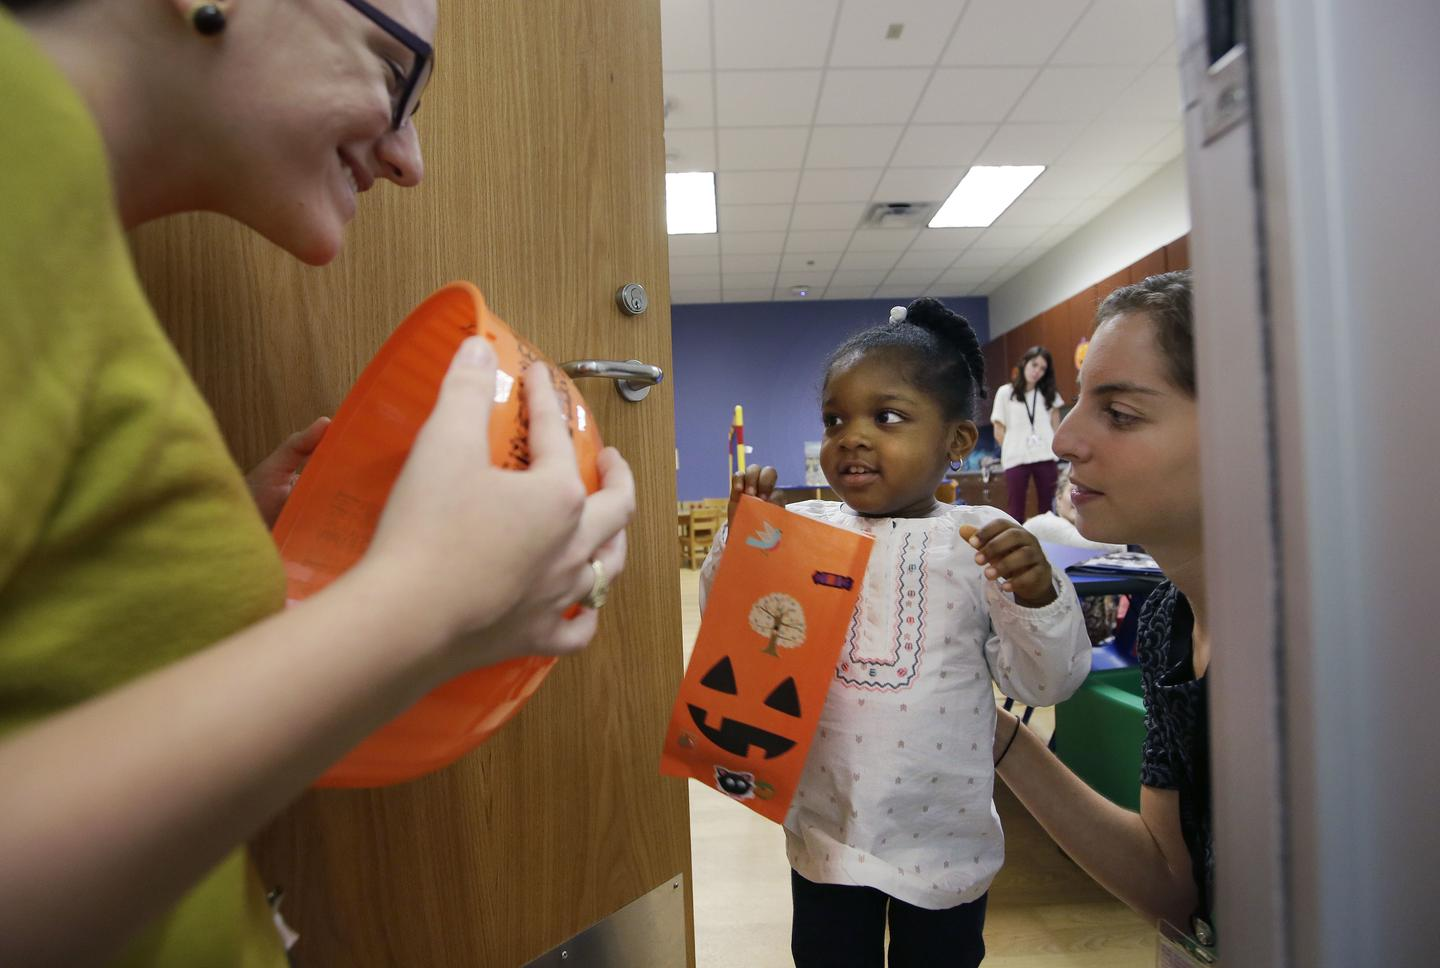 Picture of young female student at the door to a classroom holding a jack 'o lantern bag for Halloween candy. One teacher is beside her inside the classroom. Another teacher is at the door with a Halloween candy bowl.